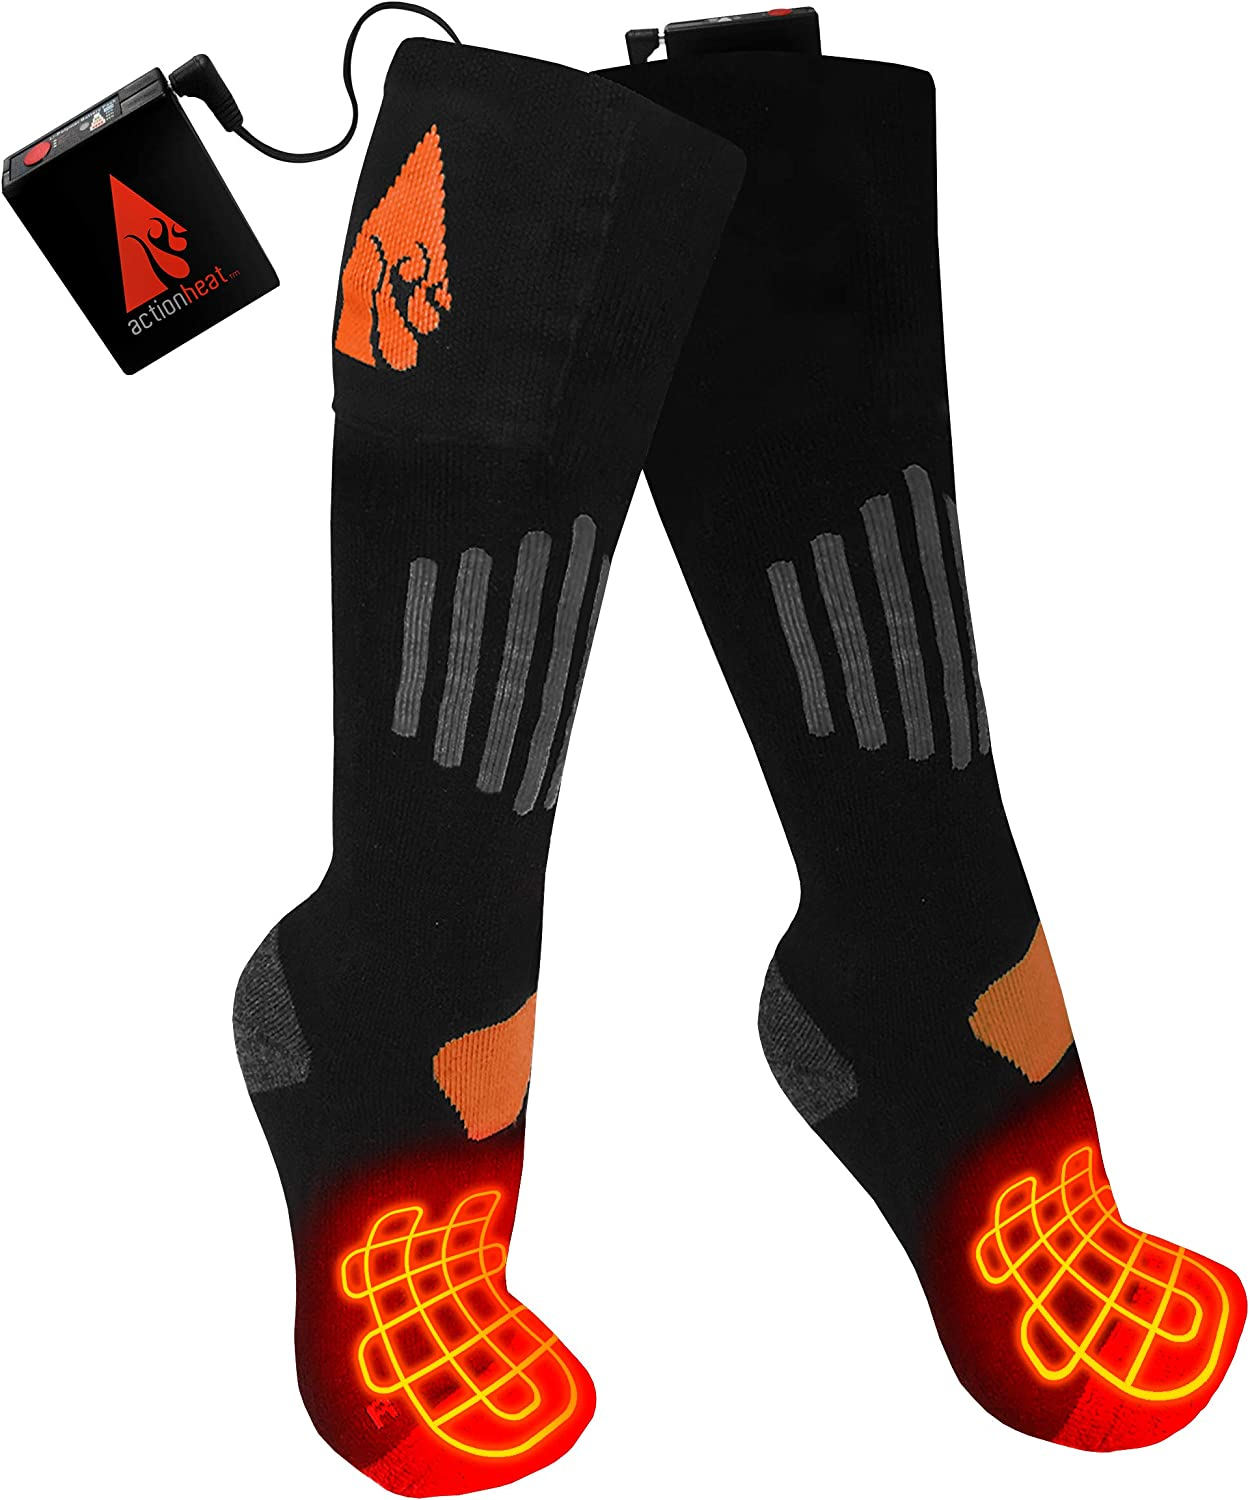 ActionHeat 3.7V Rechargeable Battery Heated Socks - Wool Sports & Outdoors - Outdoor Recreation - Winter Sports - Skiing - Clothing ActionHeat B0747XCCXD